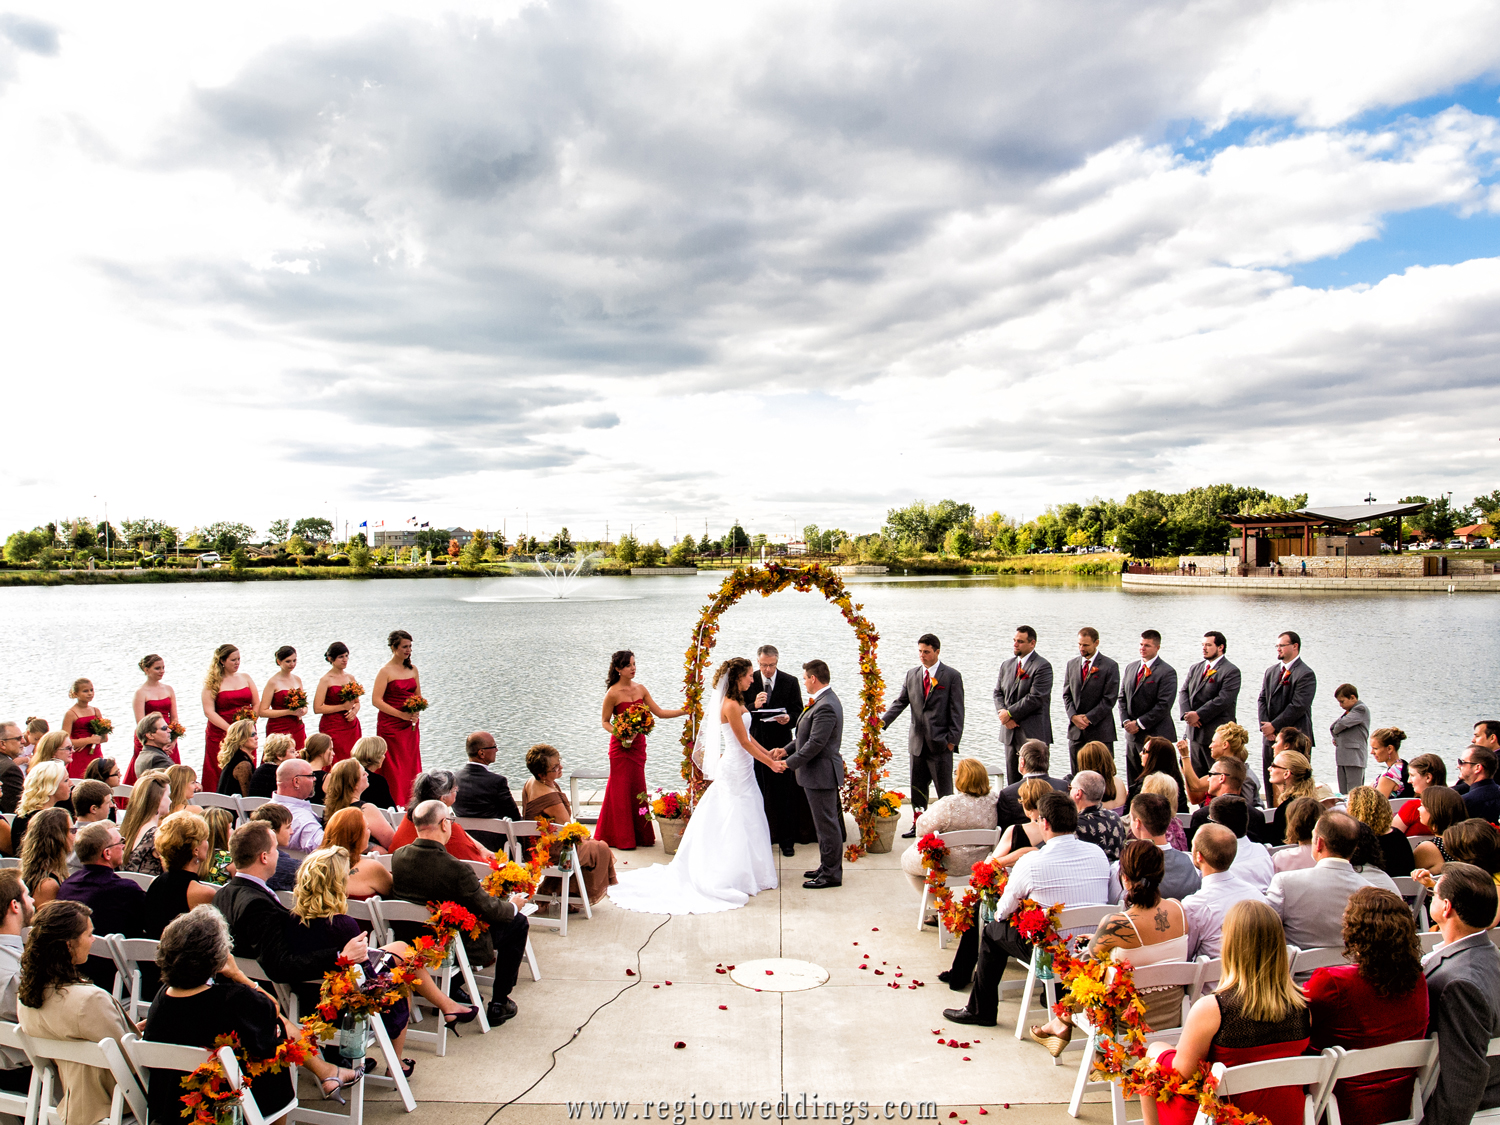 Friends and family look on as the arch is decorated in Fall colors at an outdoor wedding at Centennial Park.